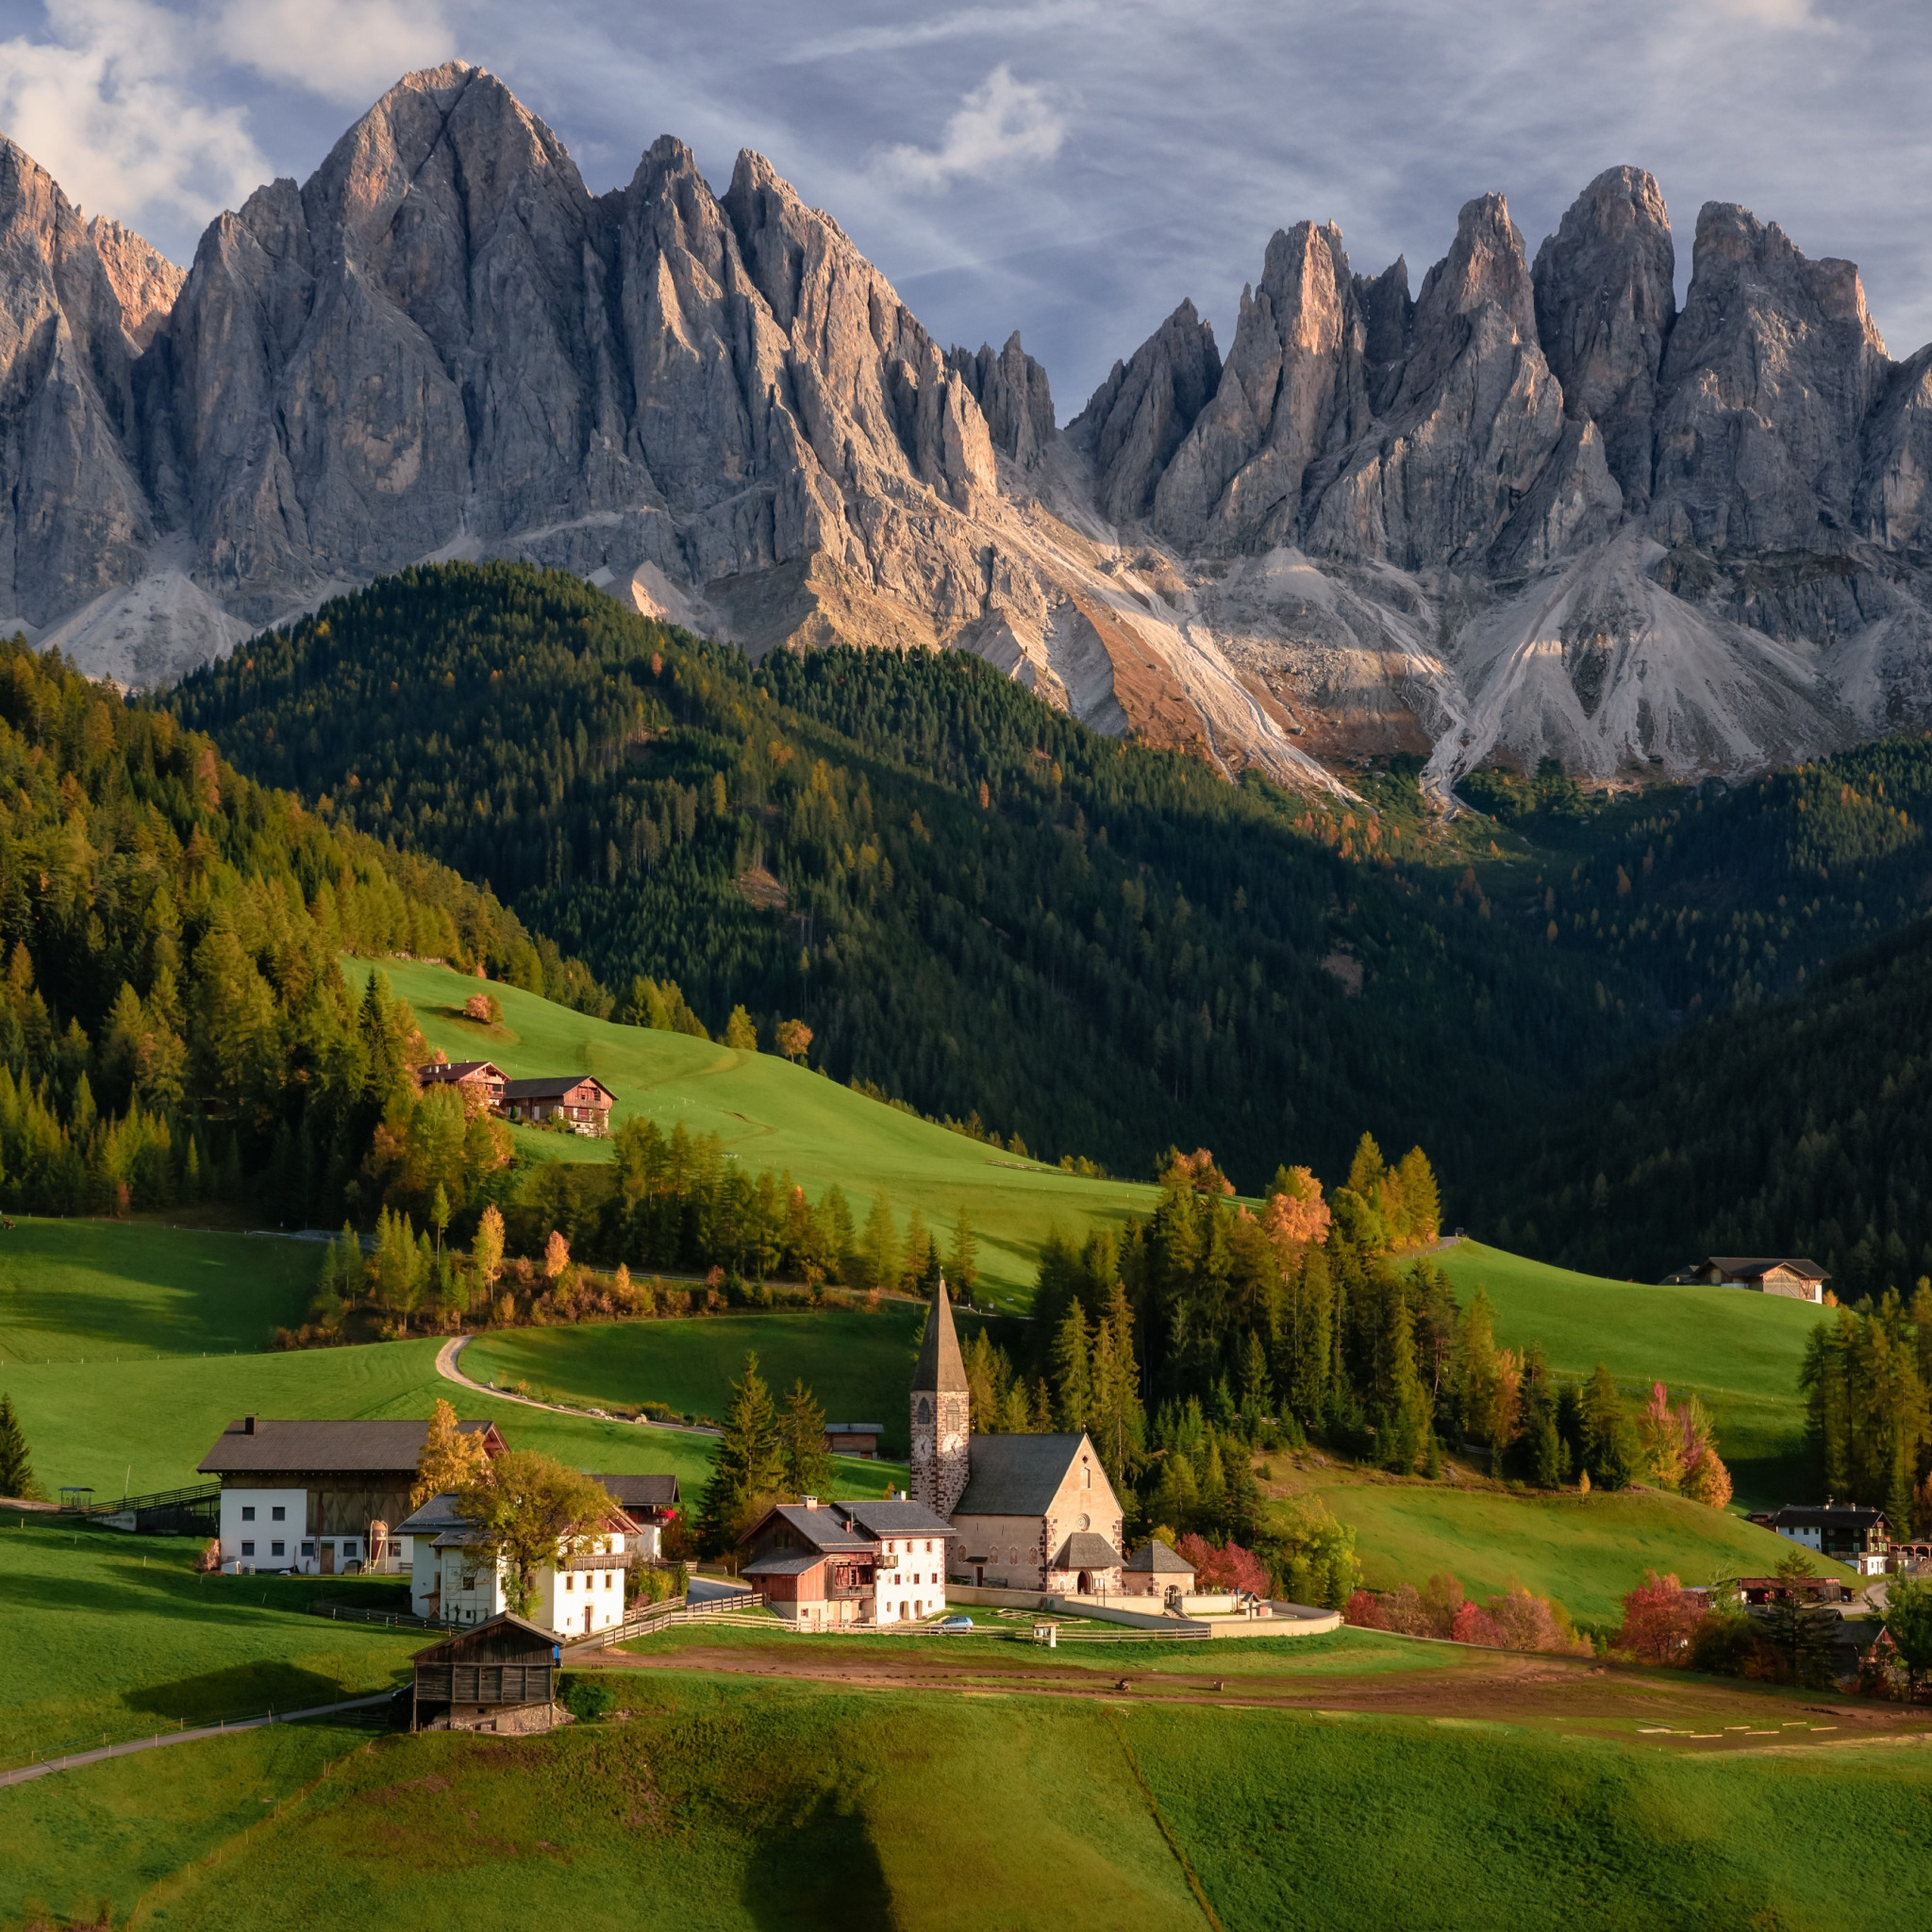 Mountain bike ans cicling holiday in the valbelluna, dolomiti